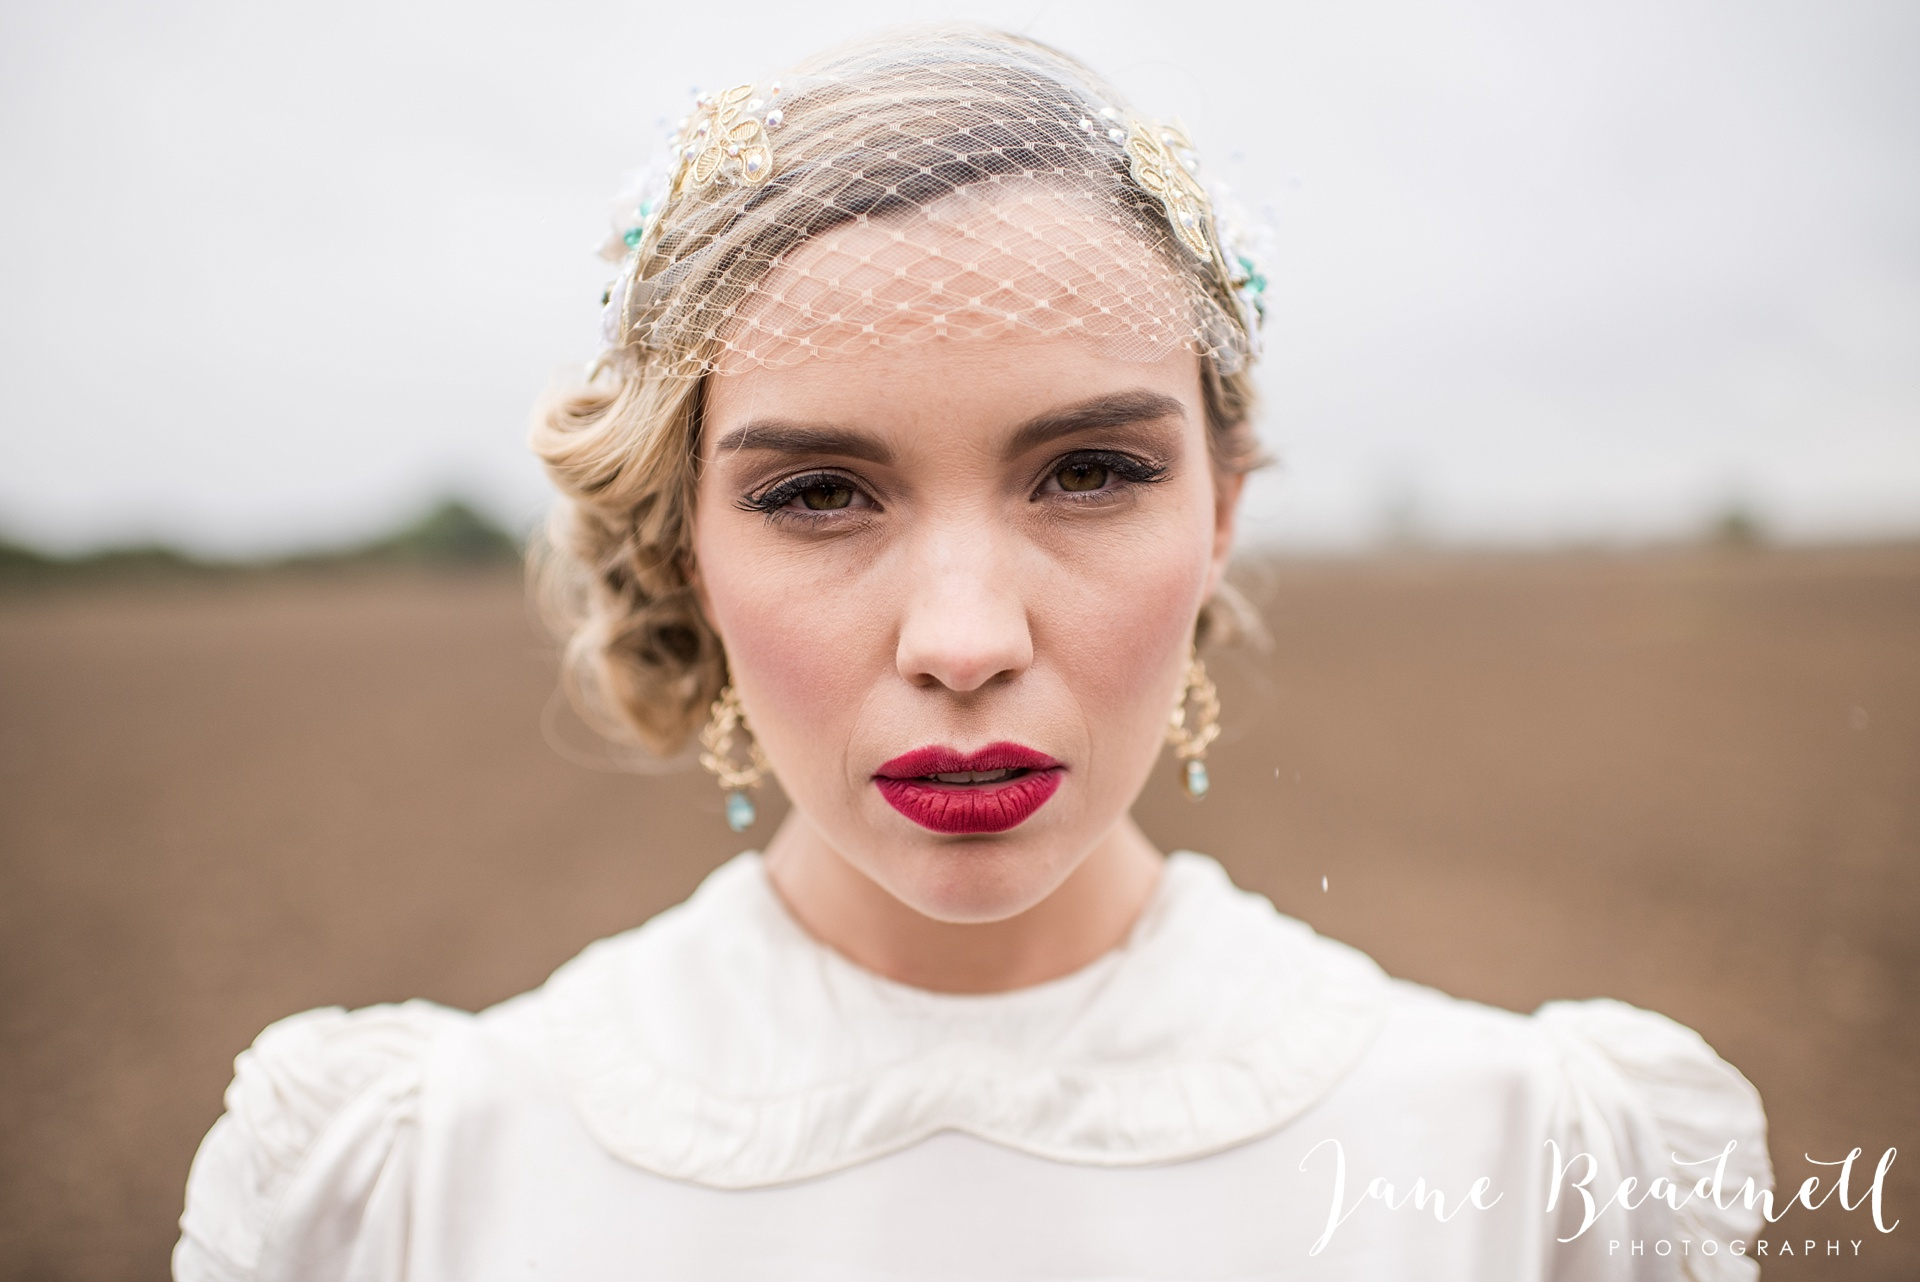 fine-art-wedding-photographer-jane-beadnell-photography-yorkshire-wedding-photographer_0058